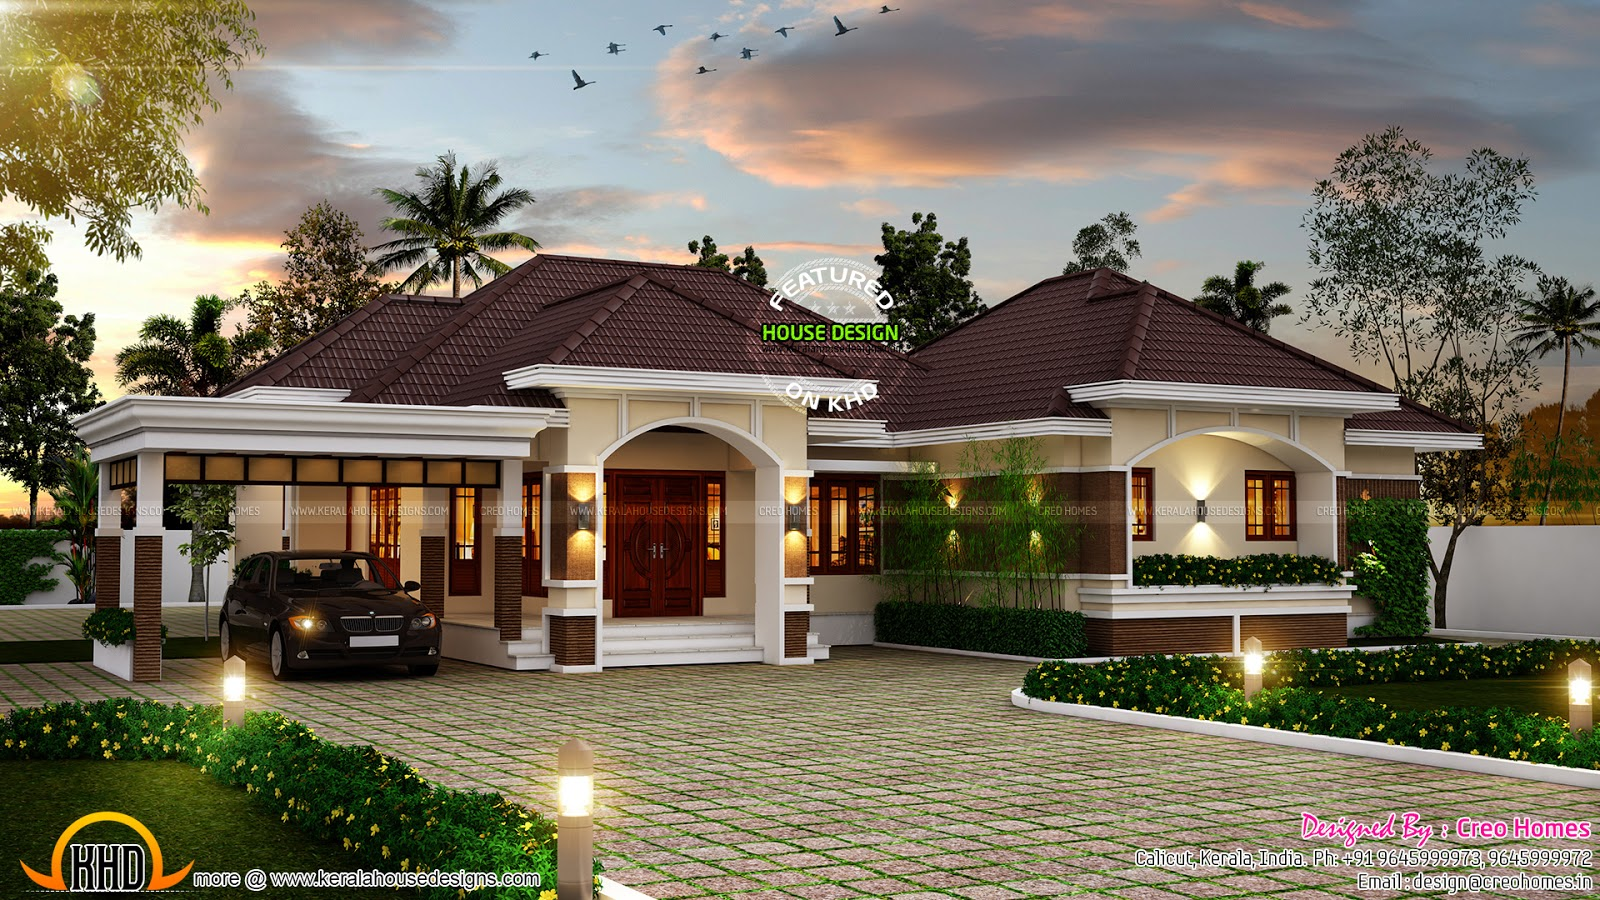 Outstanding bungalow in kerala kerala home design and for Home plans kerala